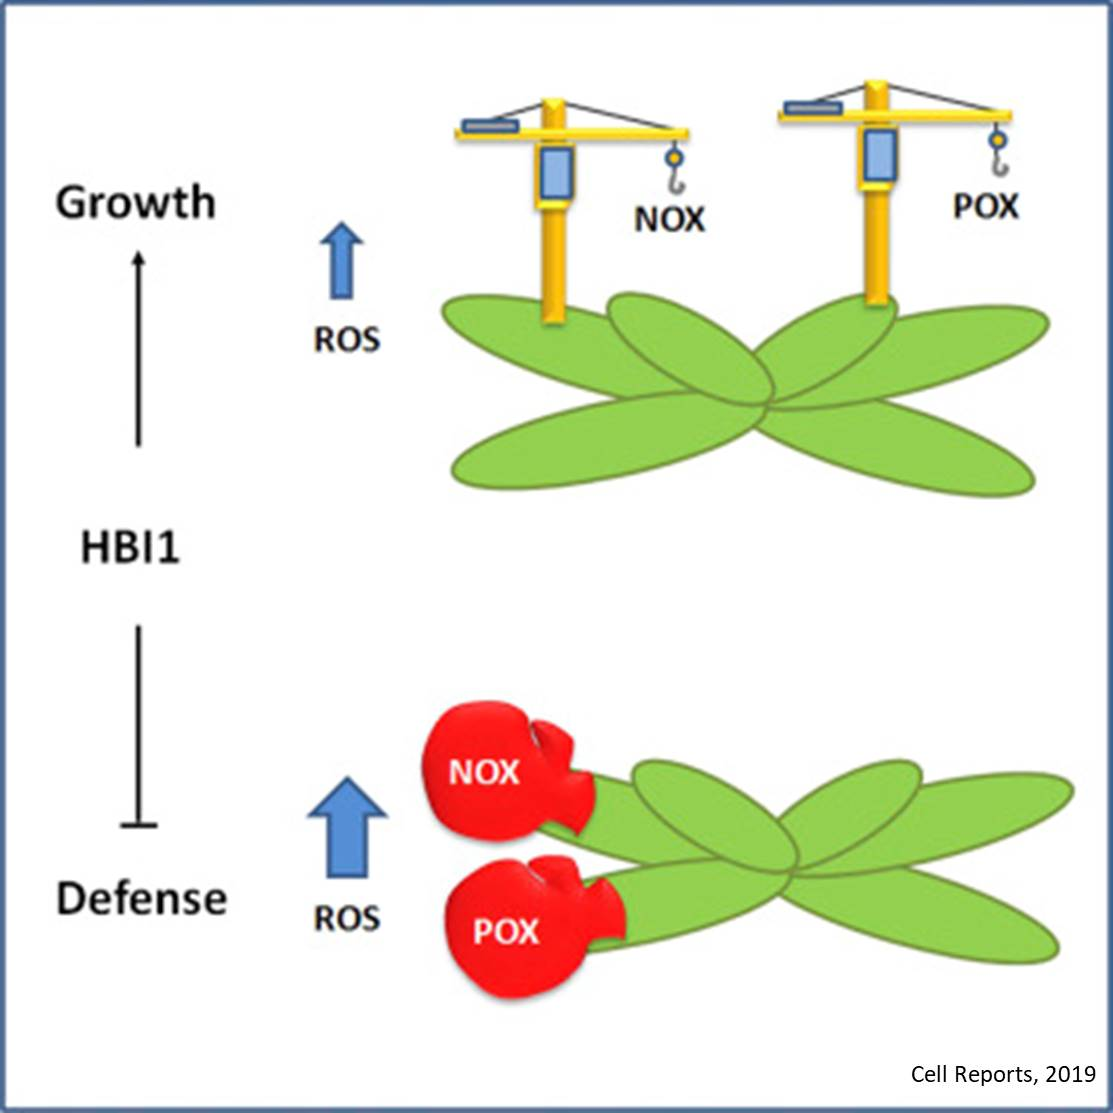 How plants decide between growth or defense